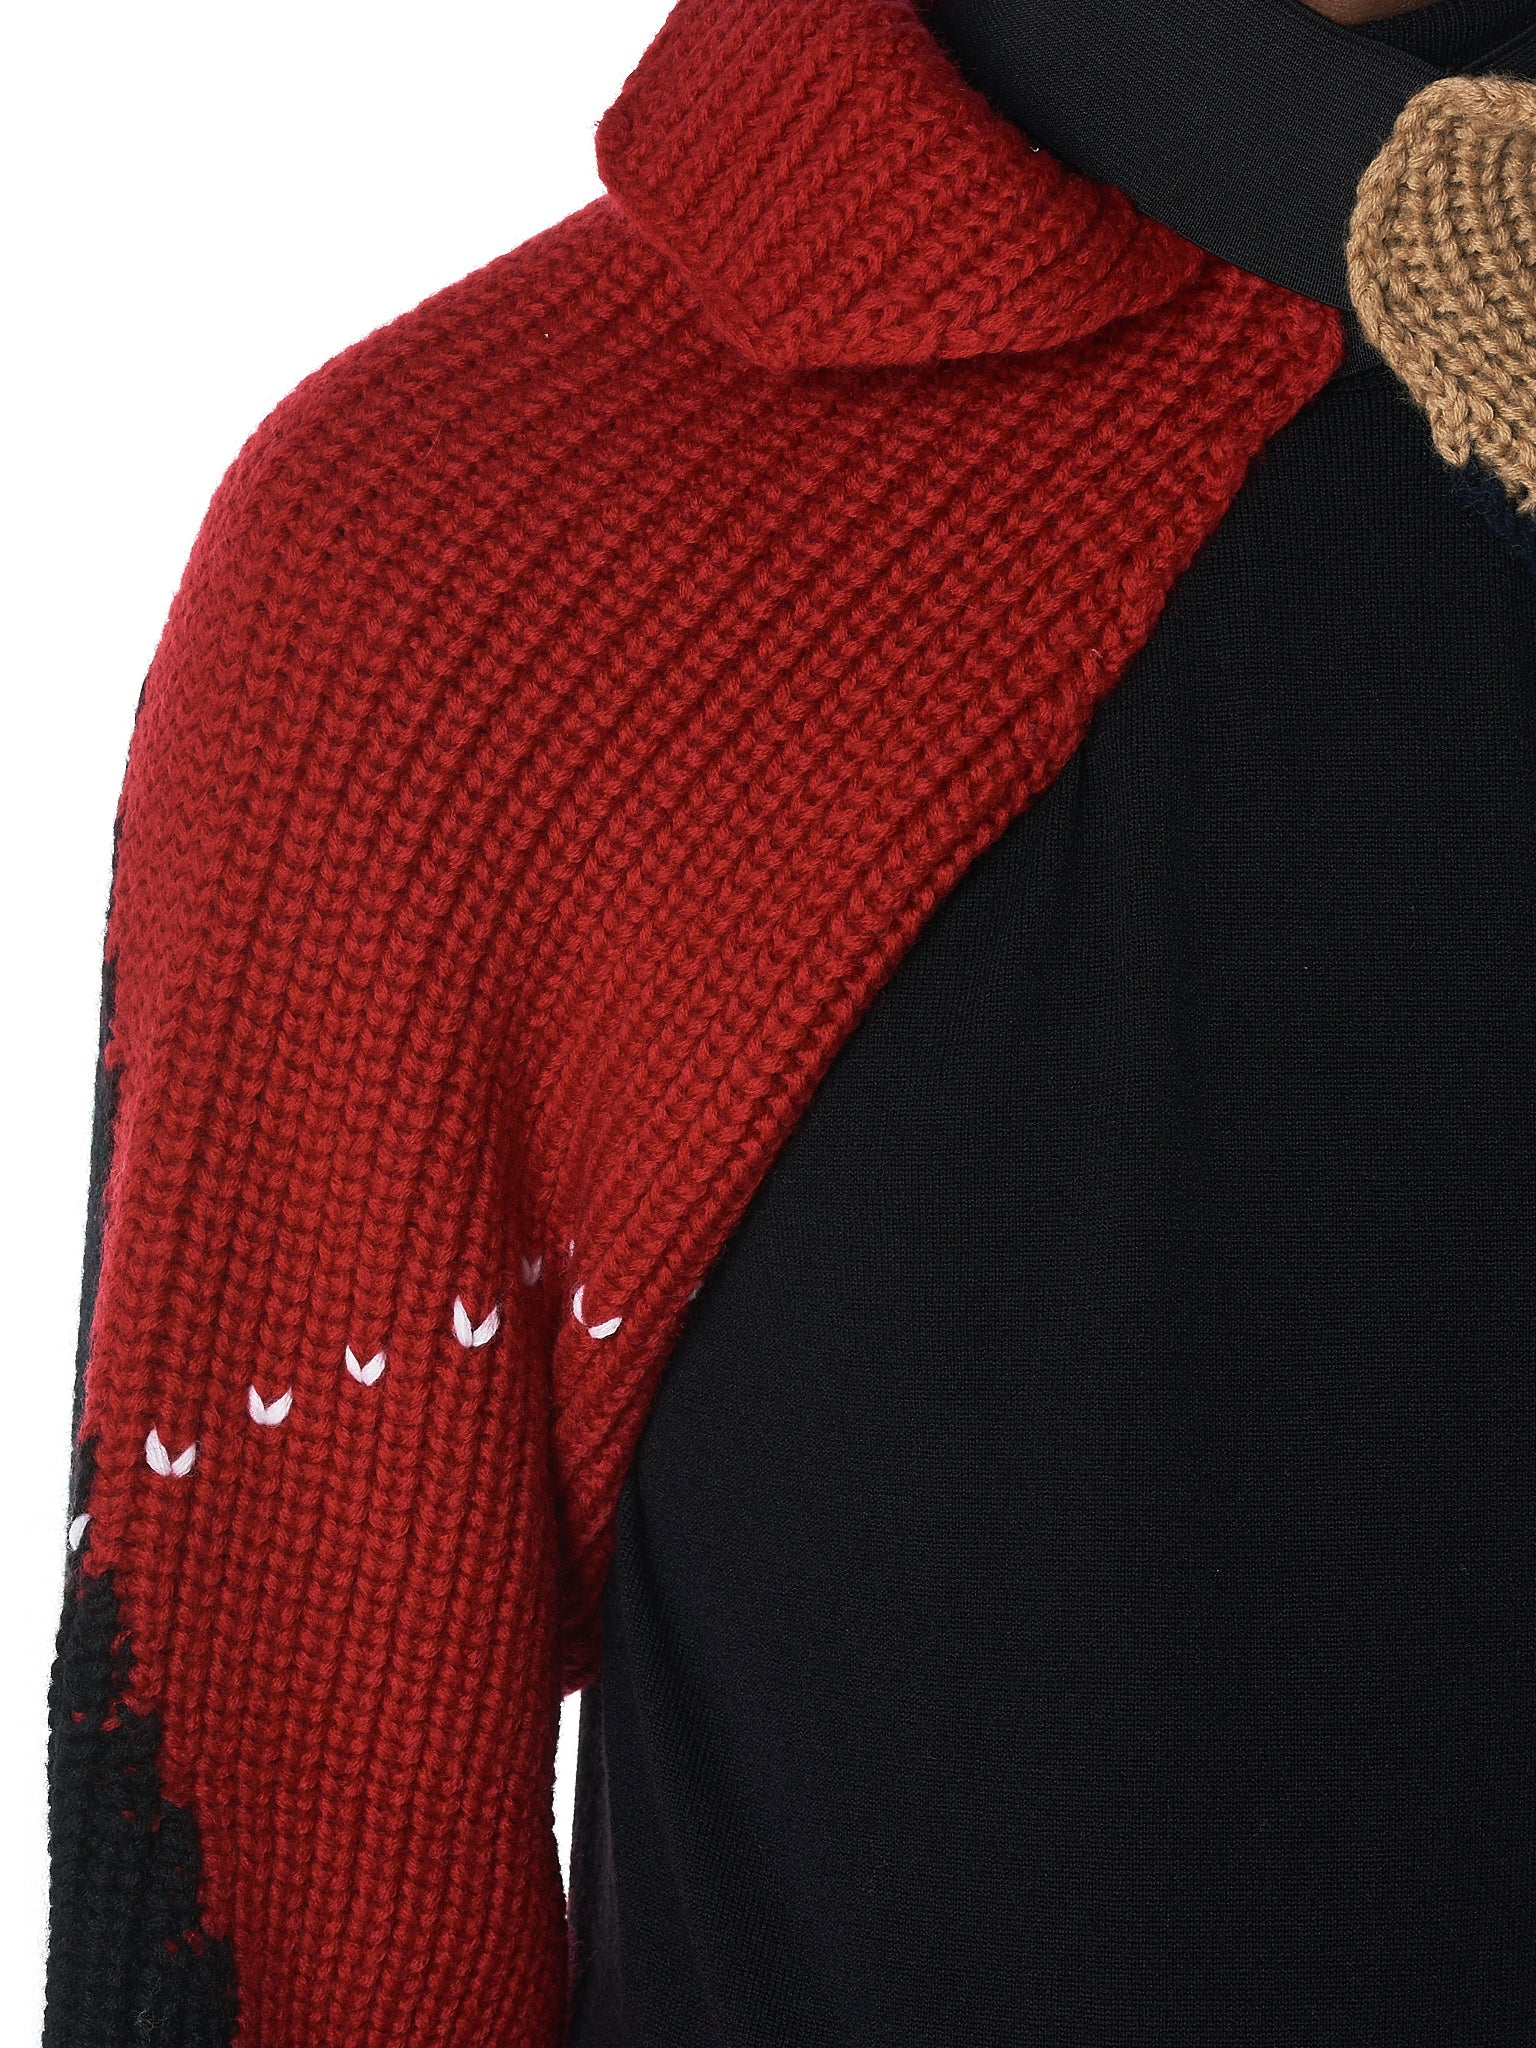 Raf Simons Knit Sleeves - Hlorenzo Detail 1